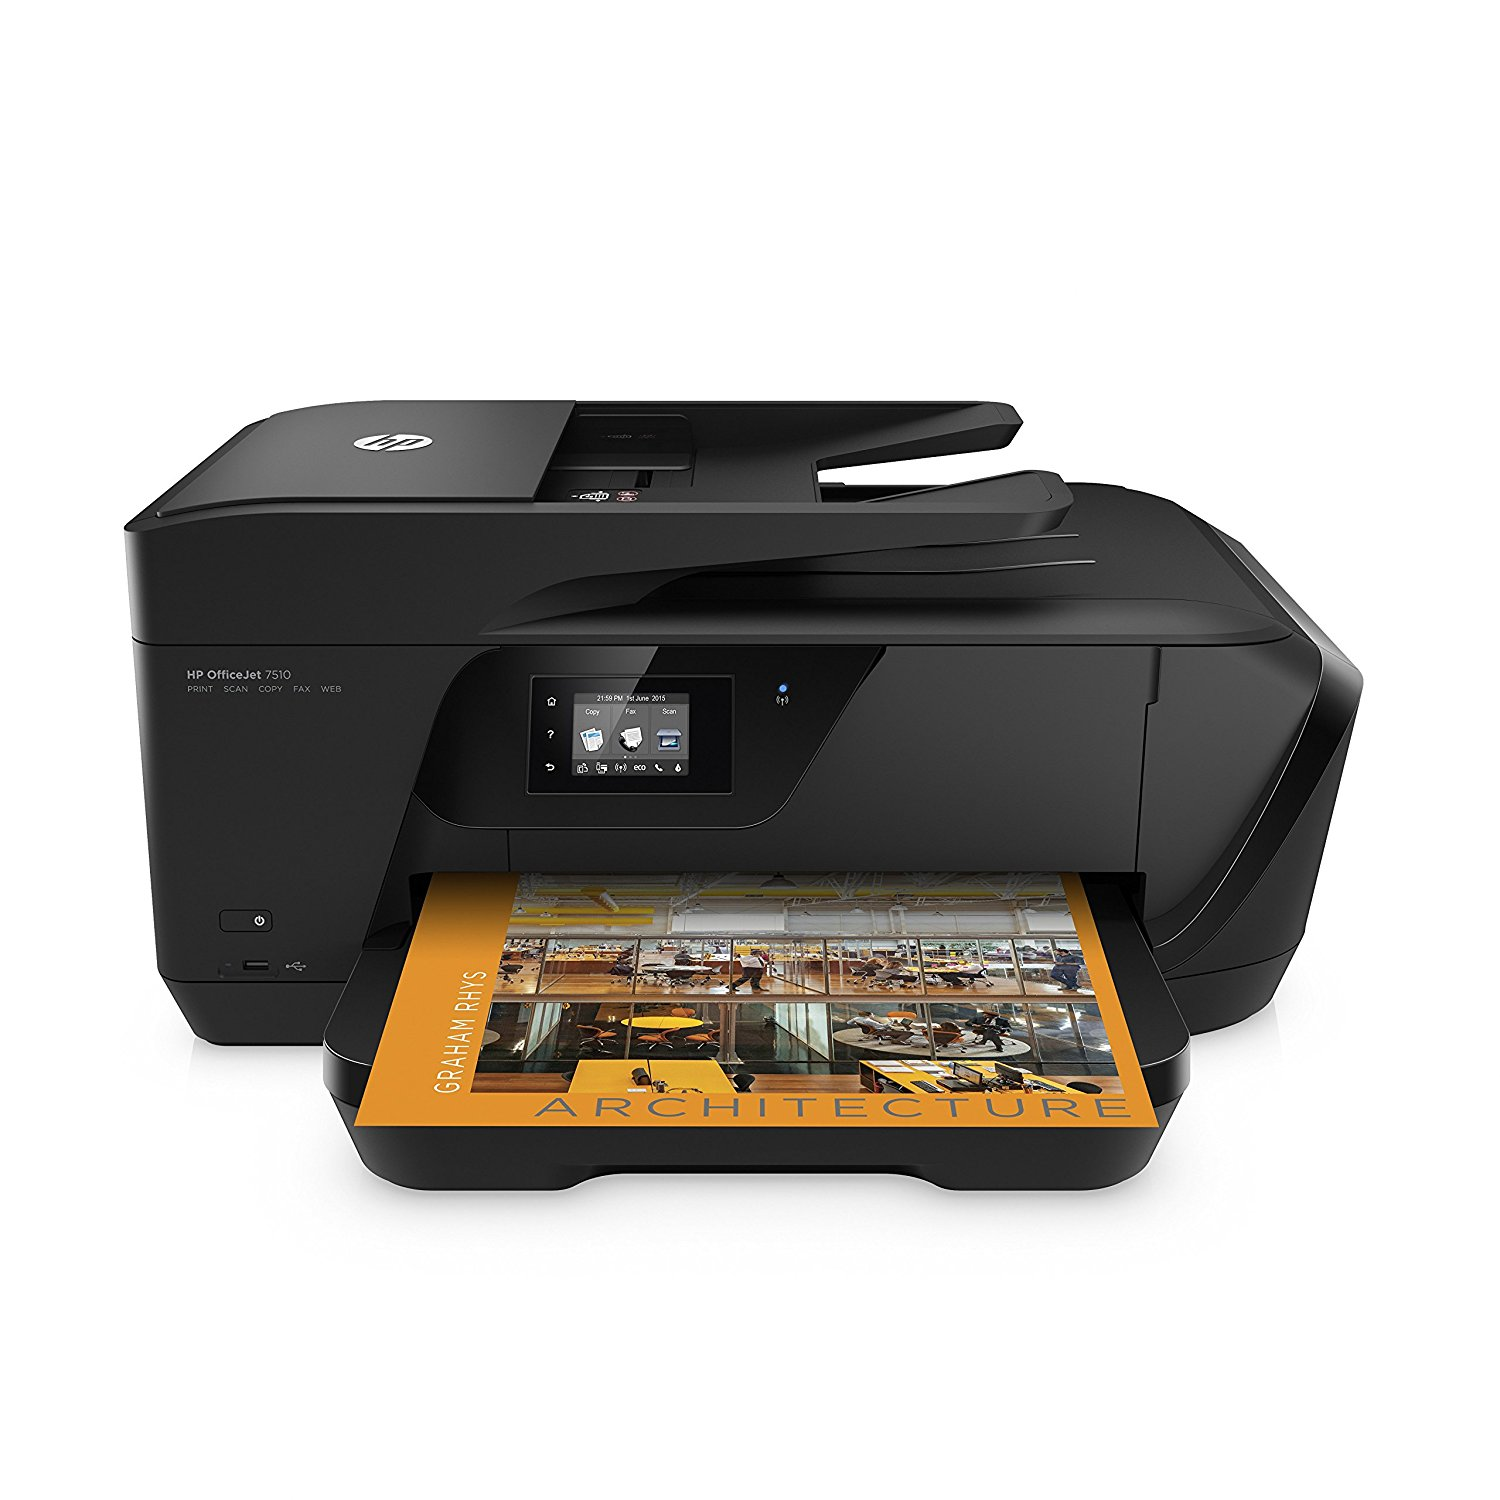 HP OfficeJet 7510 Wide Format All-in-One Printer With